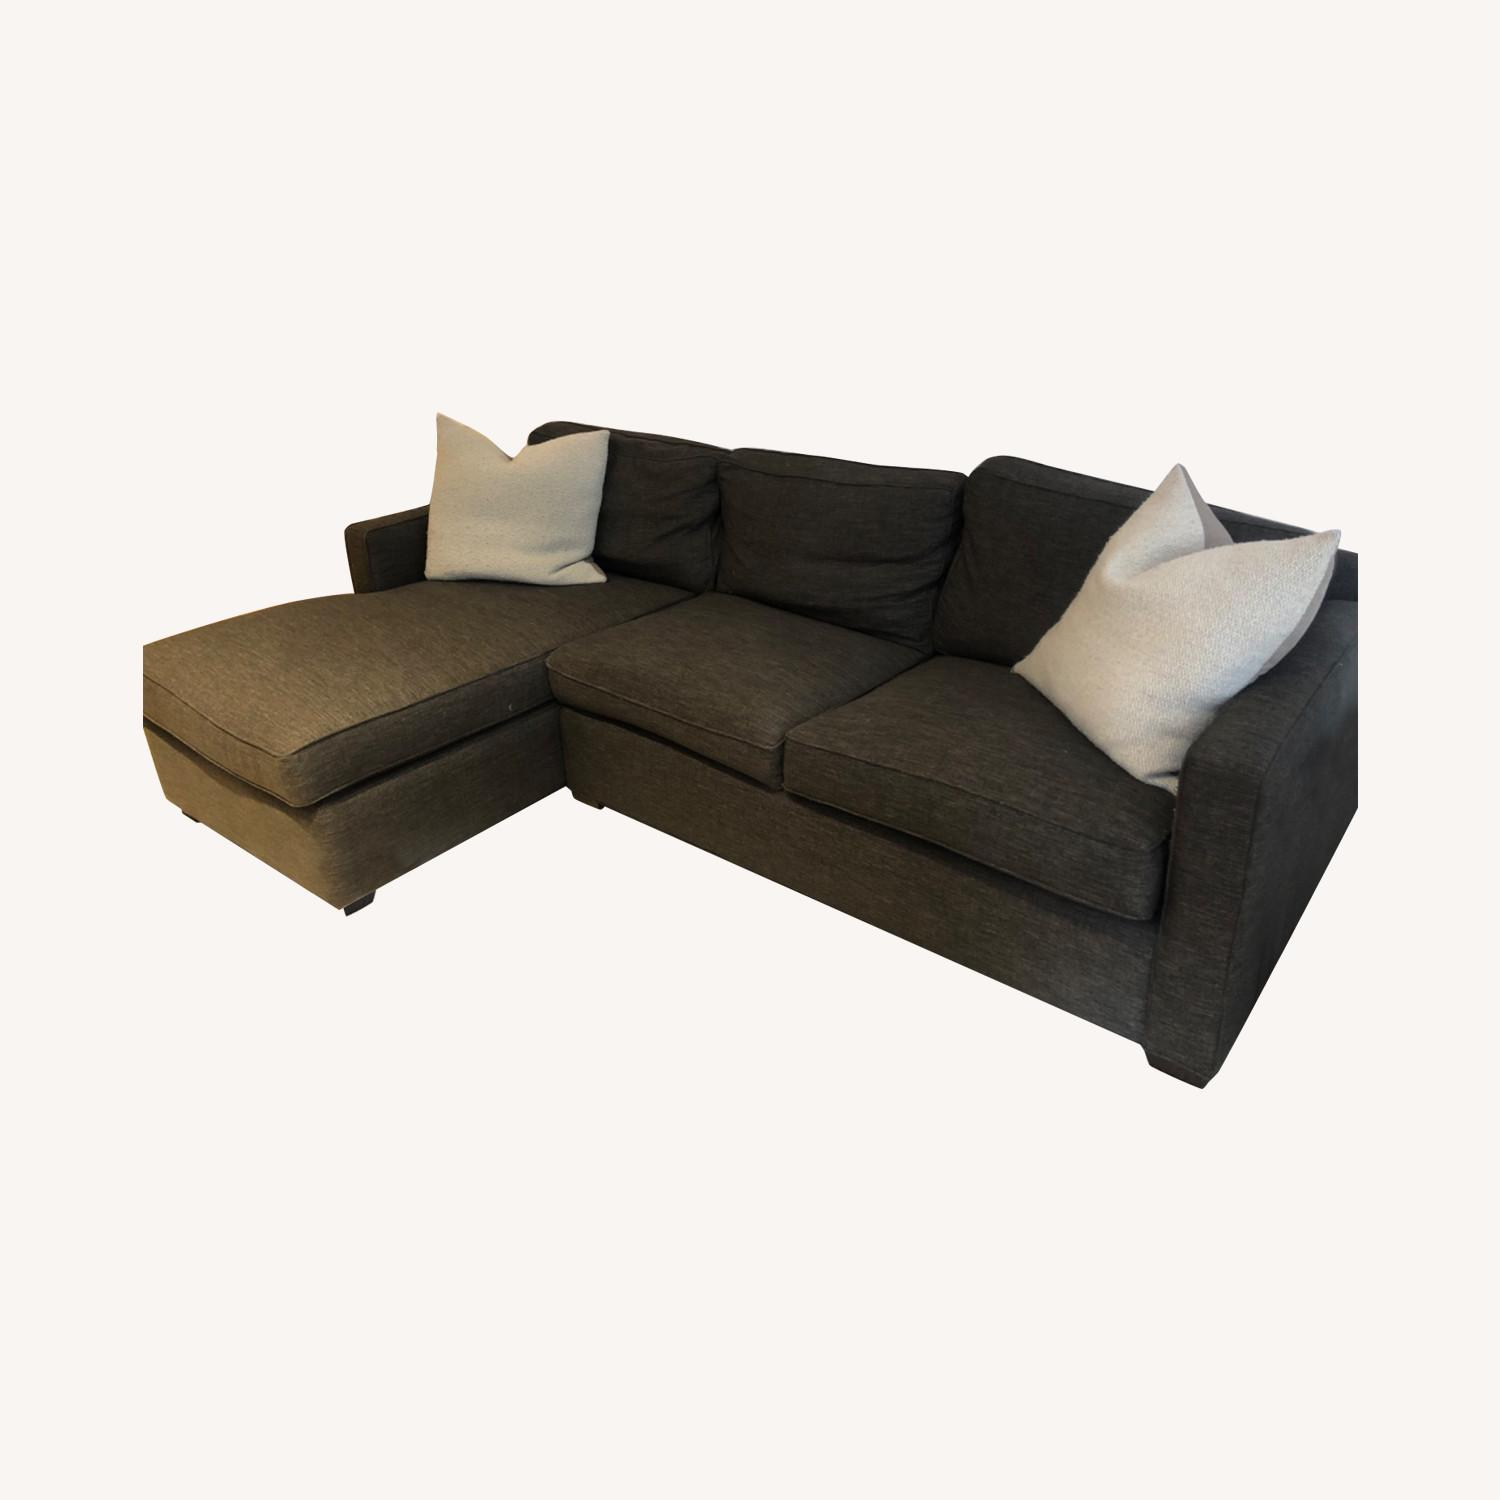 Crate and Barrel Sectional Sofa - image-0